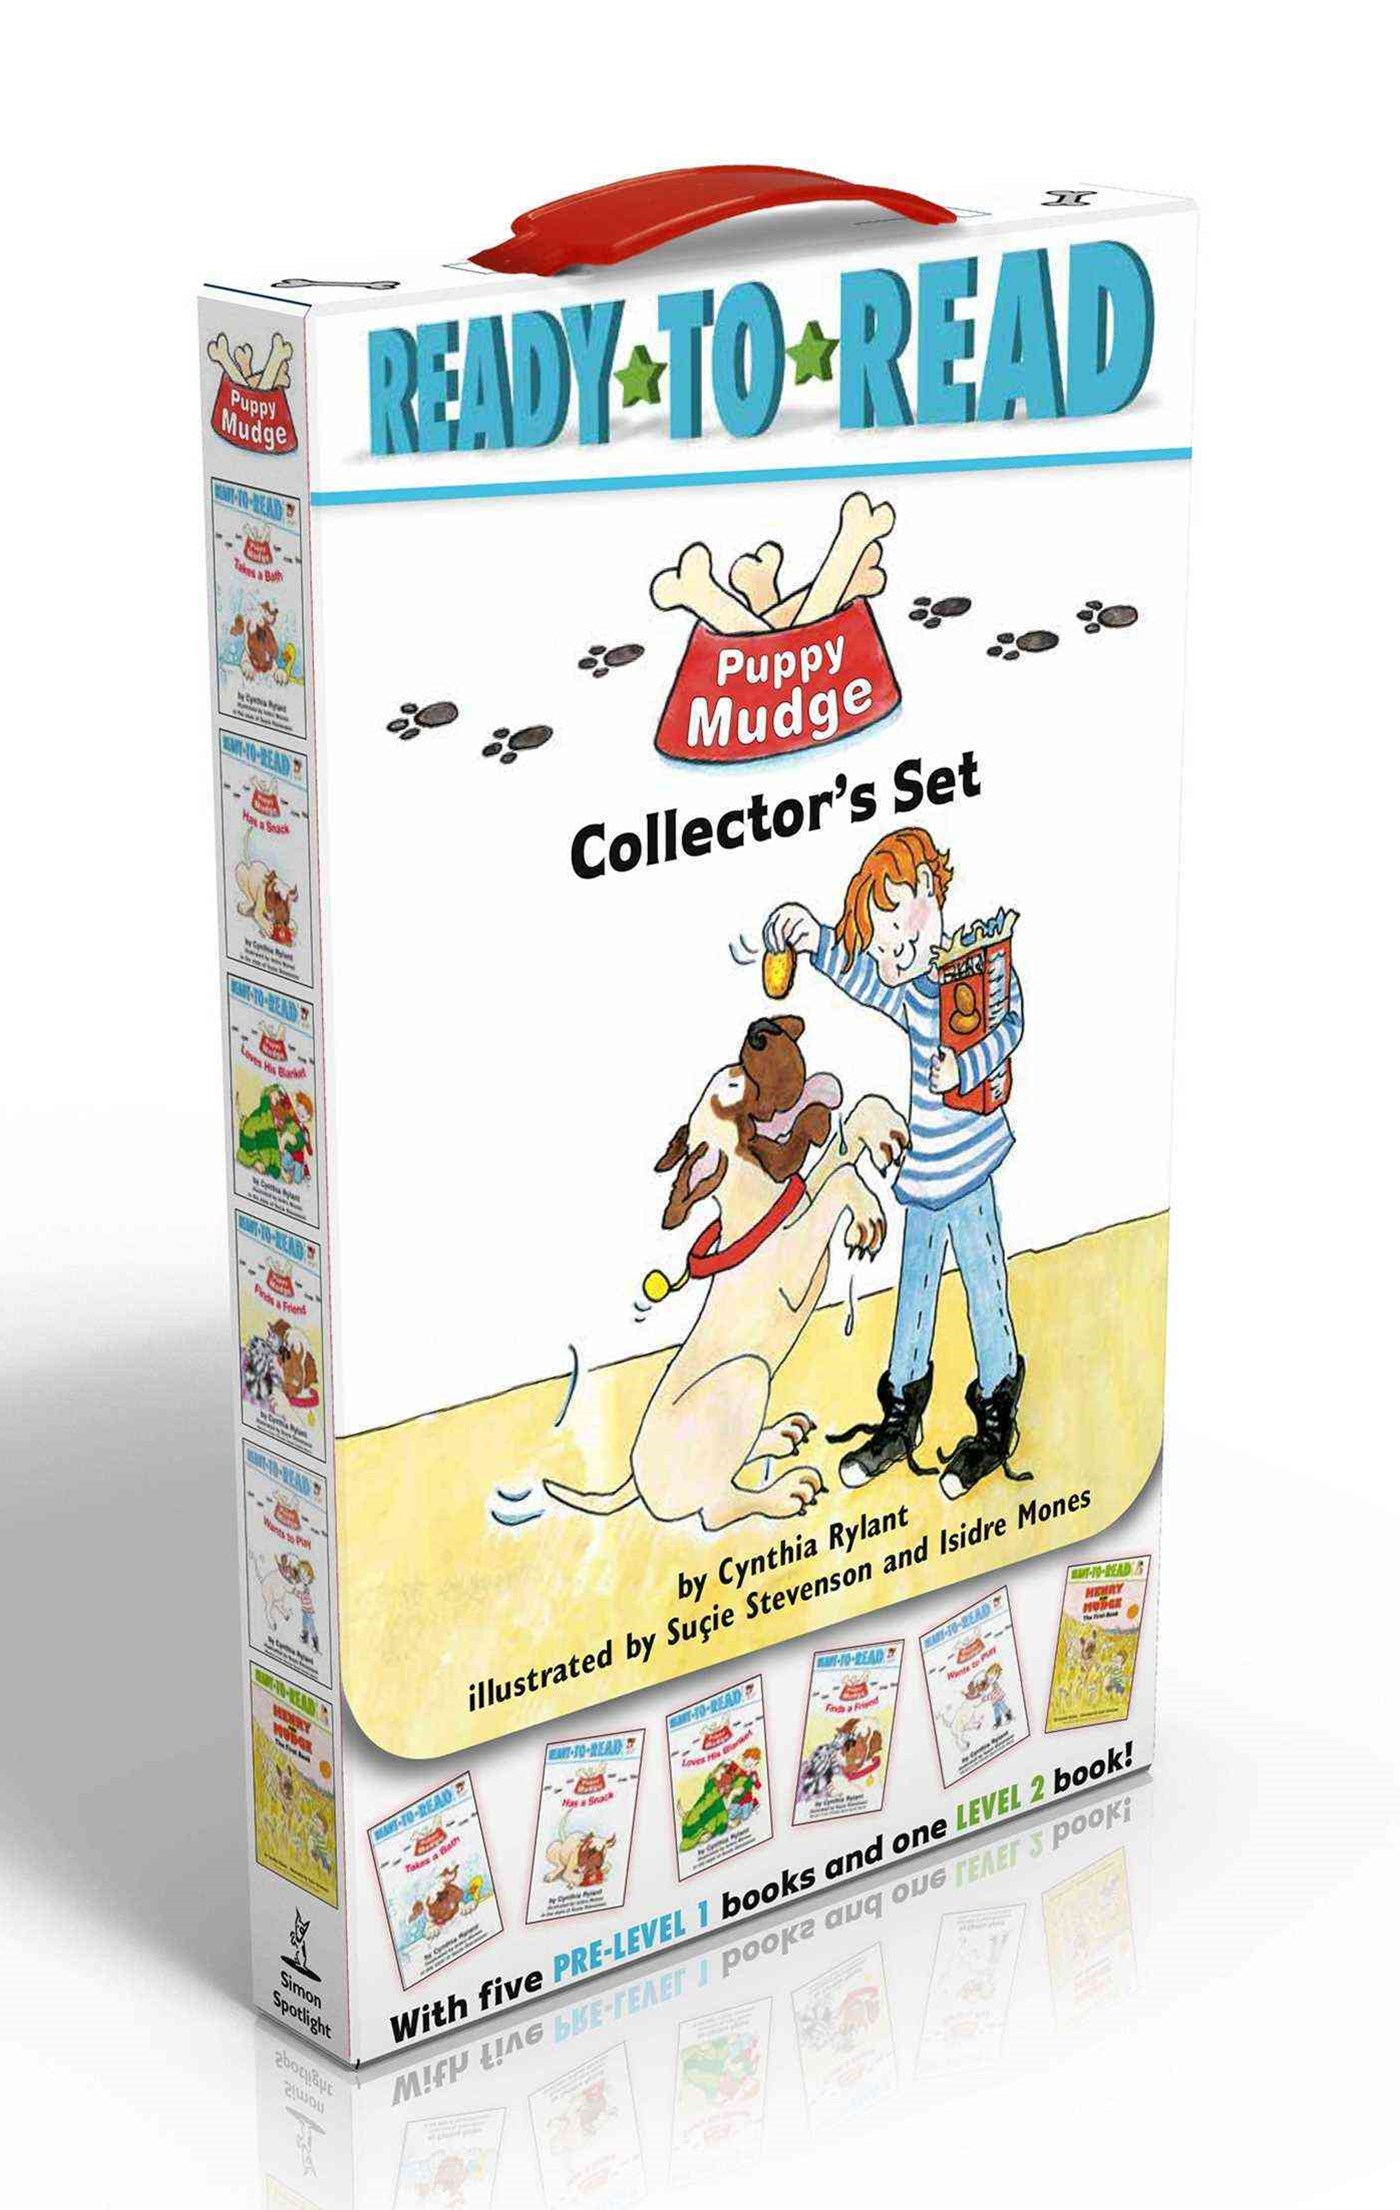 The Puppy Mudge Collector's Set